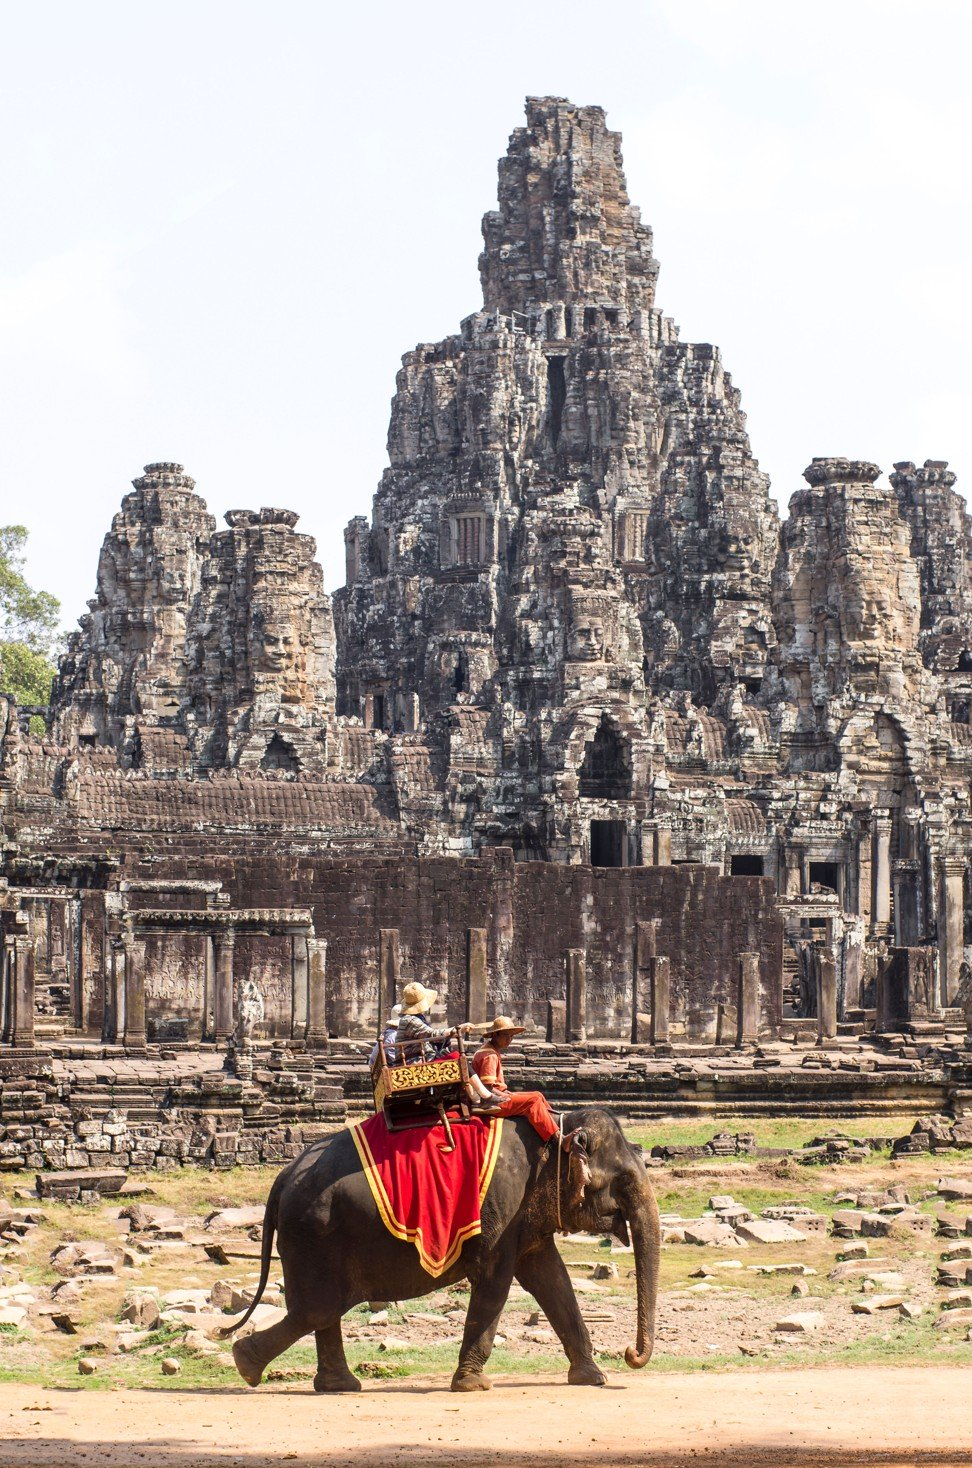 Elephant rides for tourists at Cambodia's Angkor temple to end, with animals moved to new jungle home